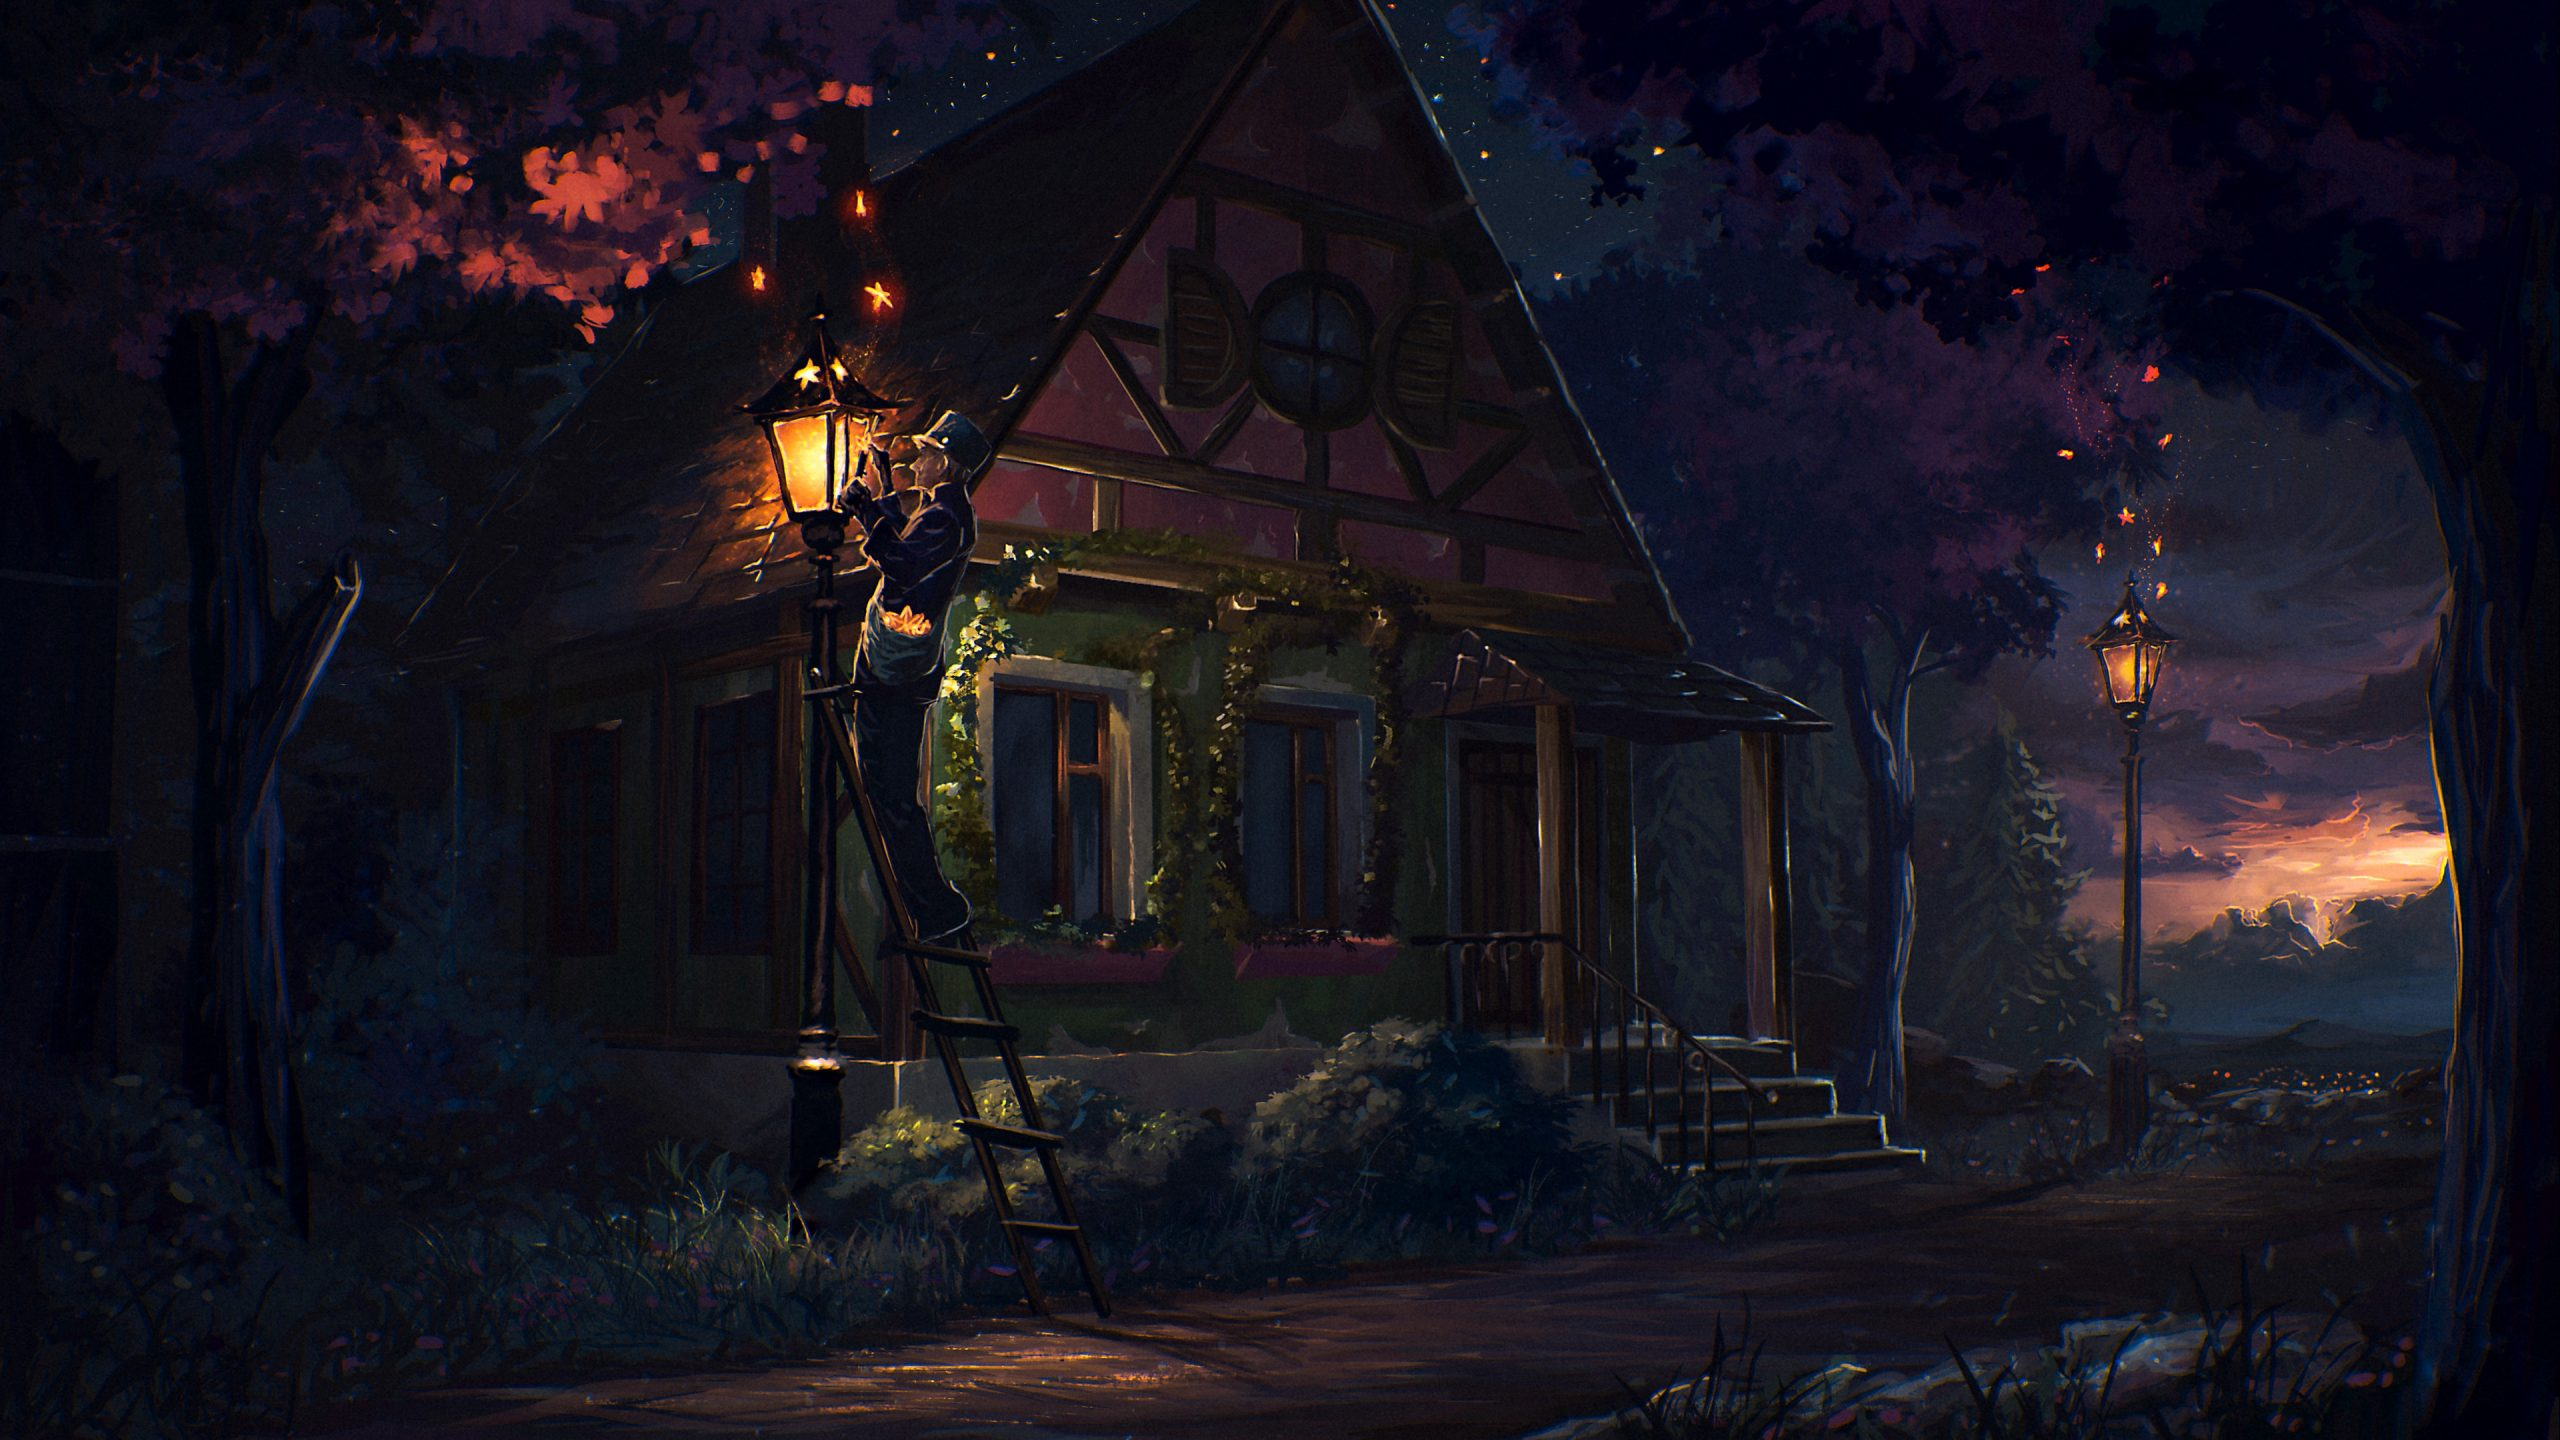 house_fairy_tale_art_light_night_101615_3840x2160